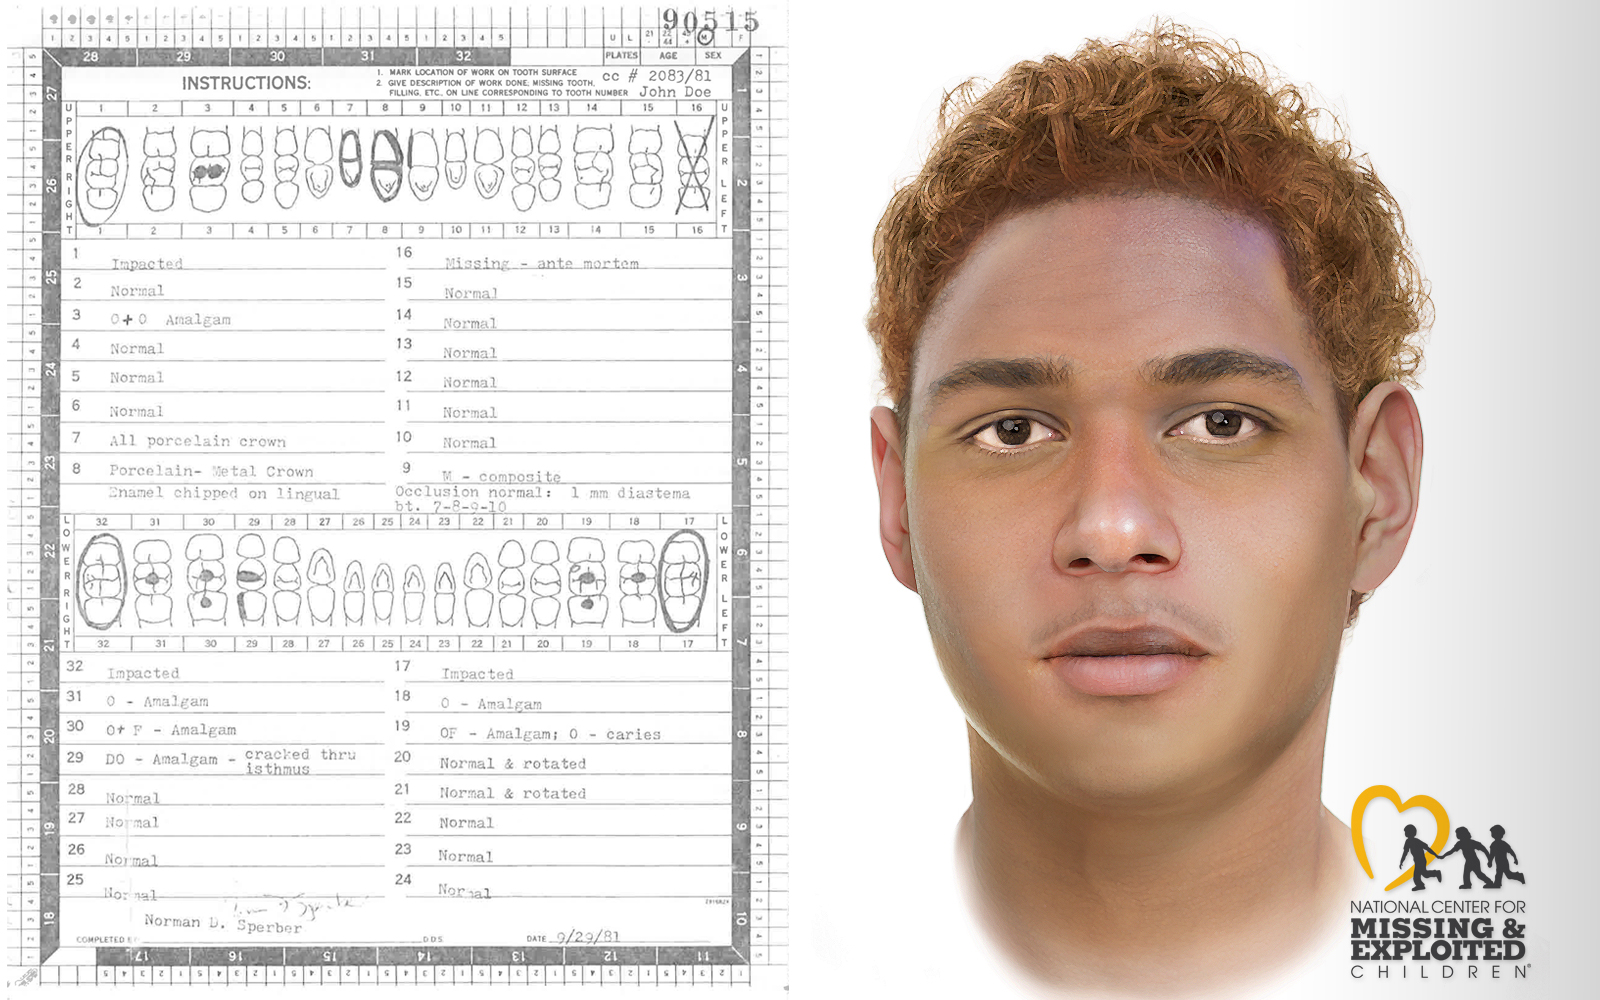 Dental record and police sketch of unidentified man